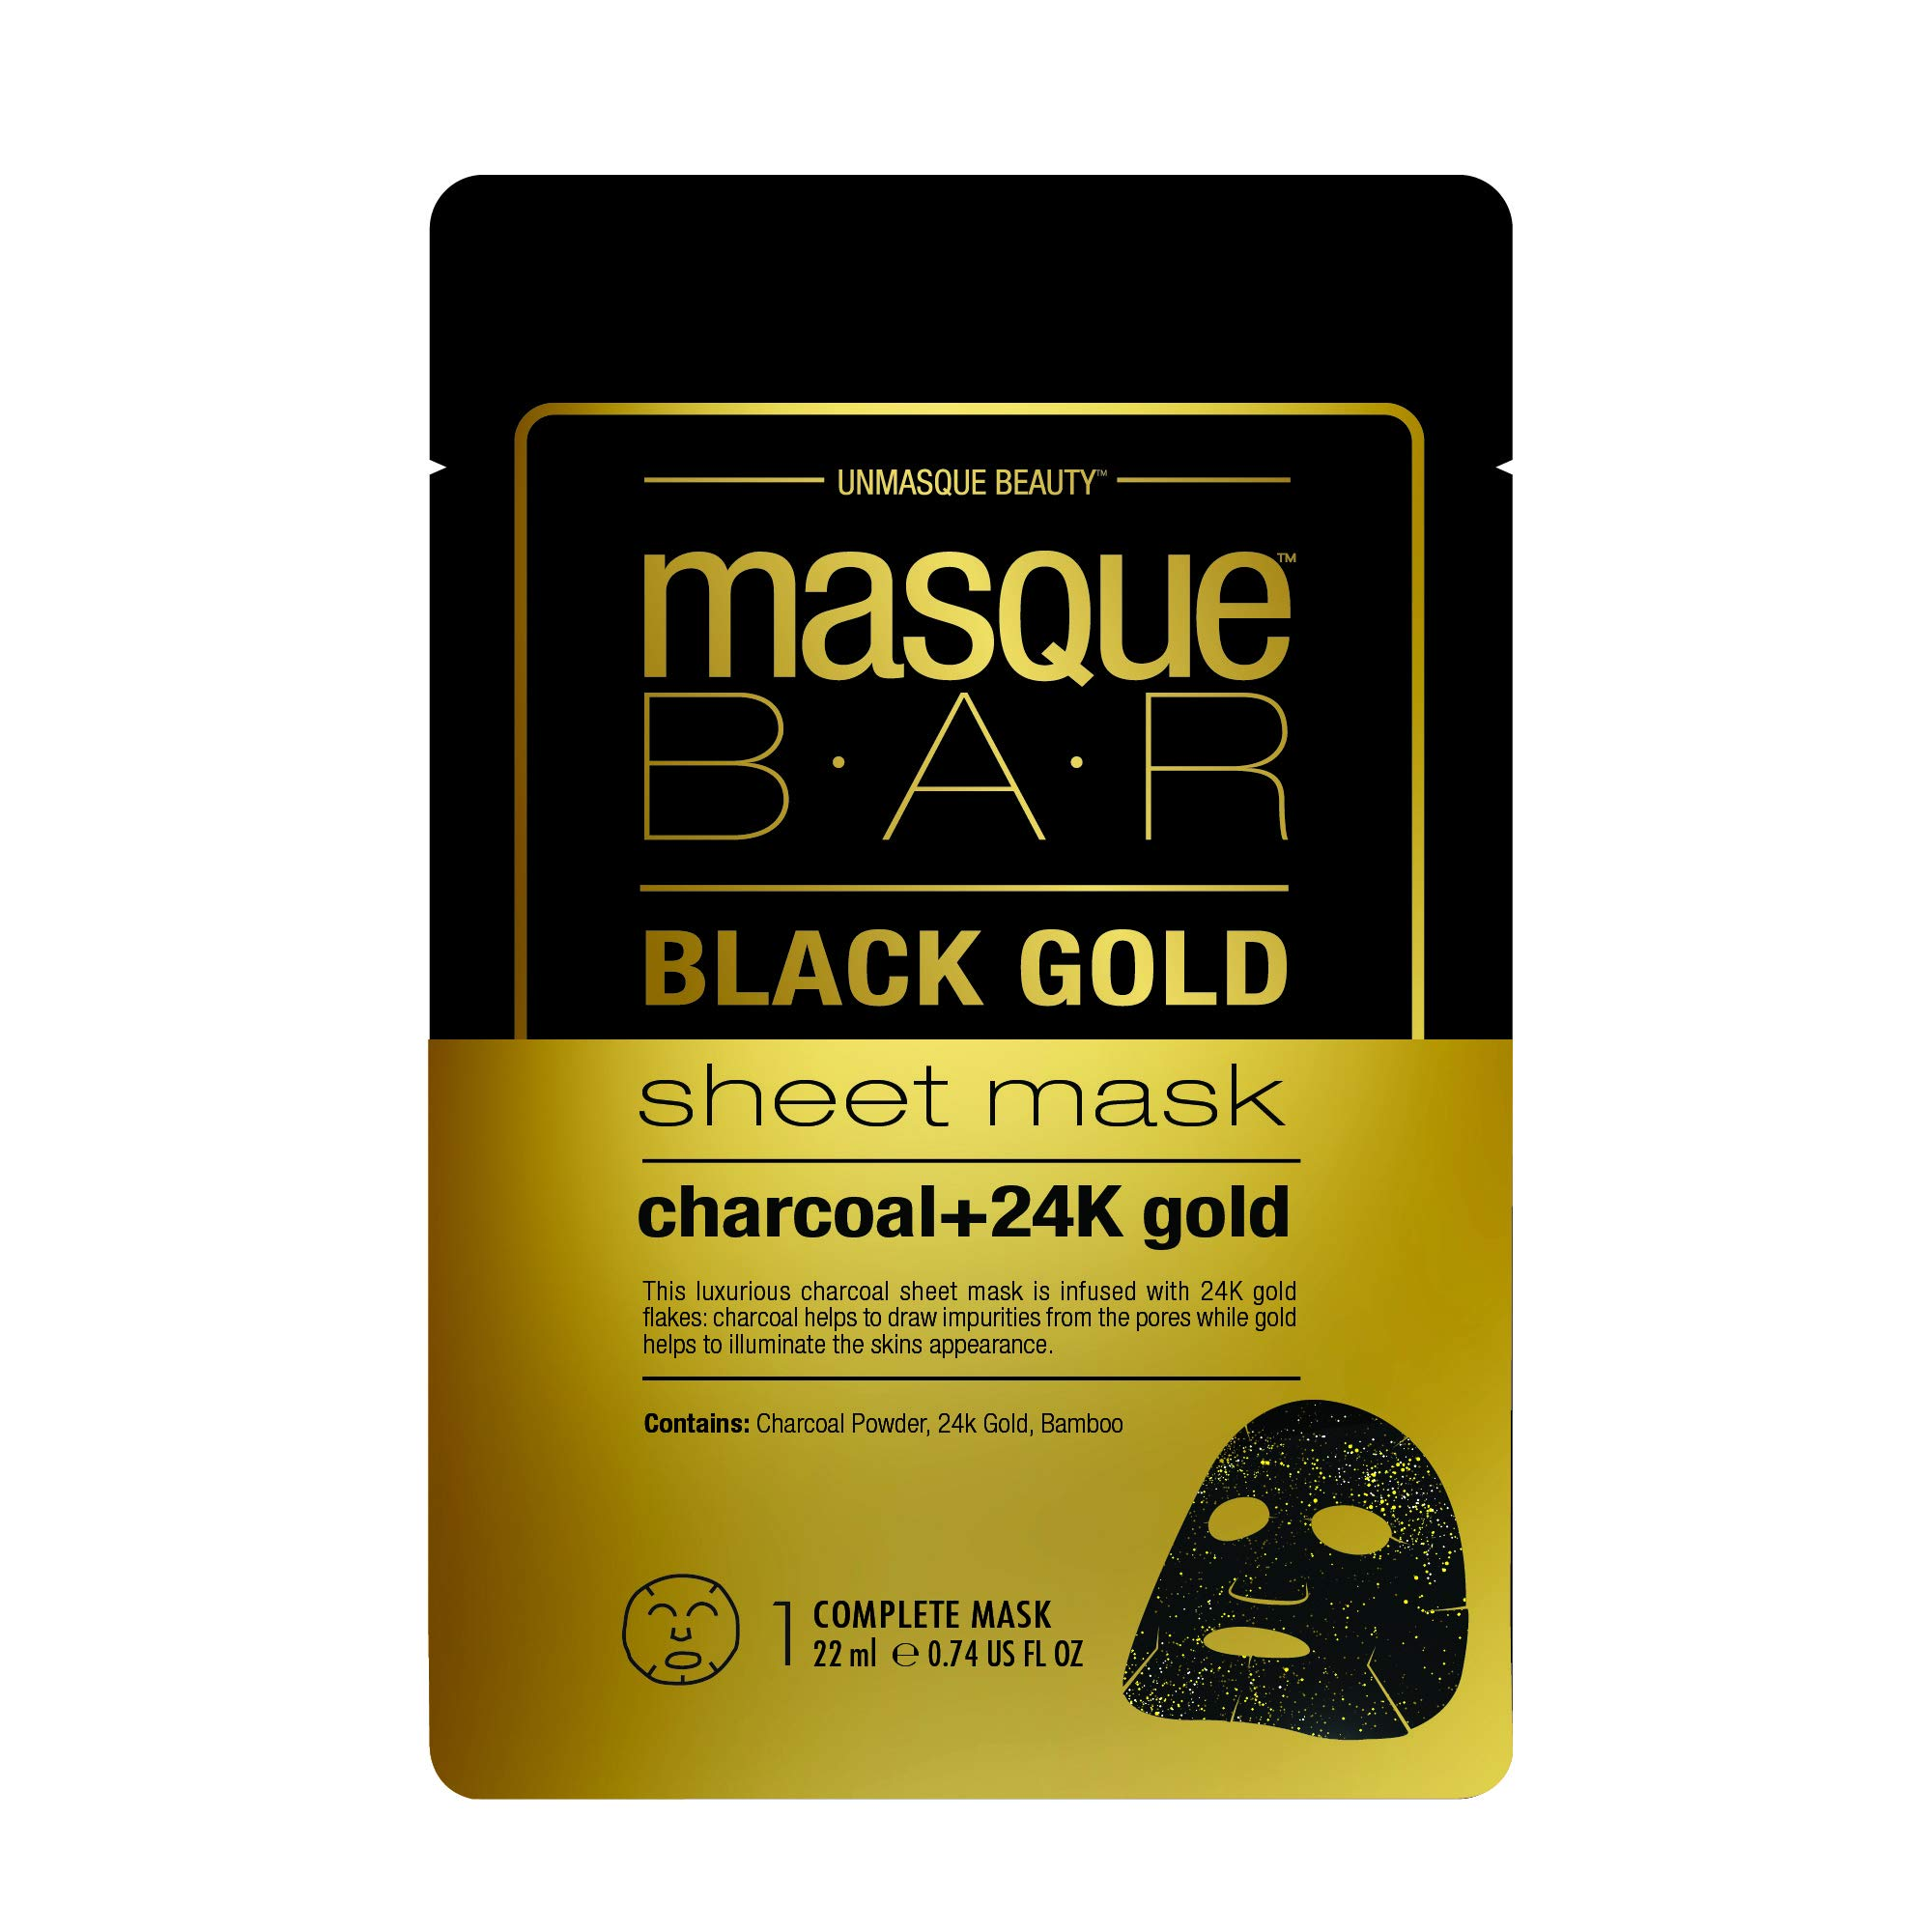 amazon.com - masque BAR Black Gold Sheet Mask with 24k Gold, Charcoal Powder, and Bamboo - Enriched Pore Refiner to Brighten Skin - Made in Korea